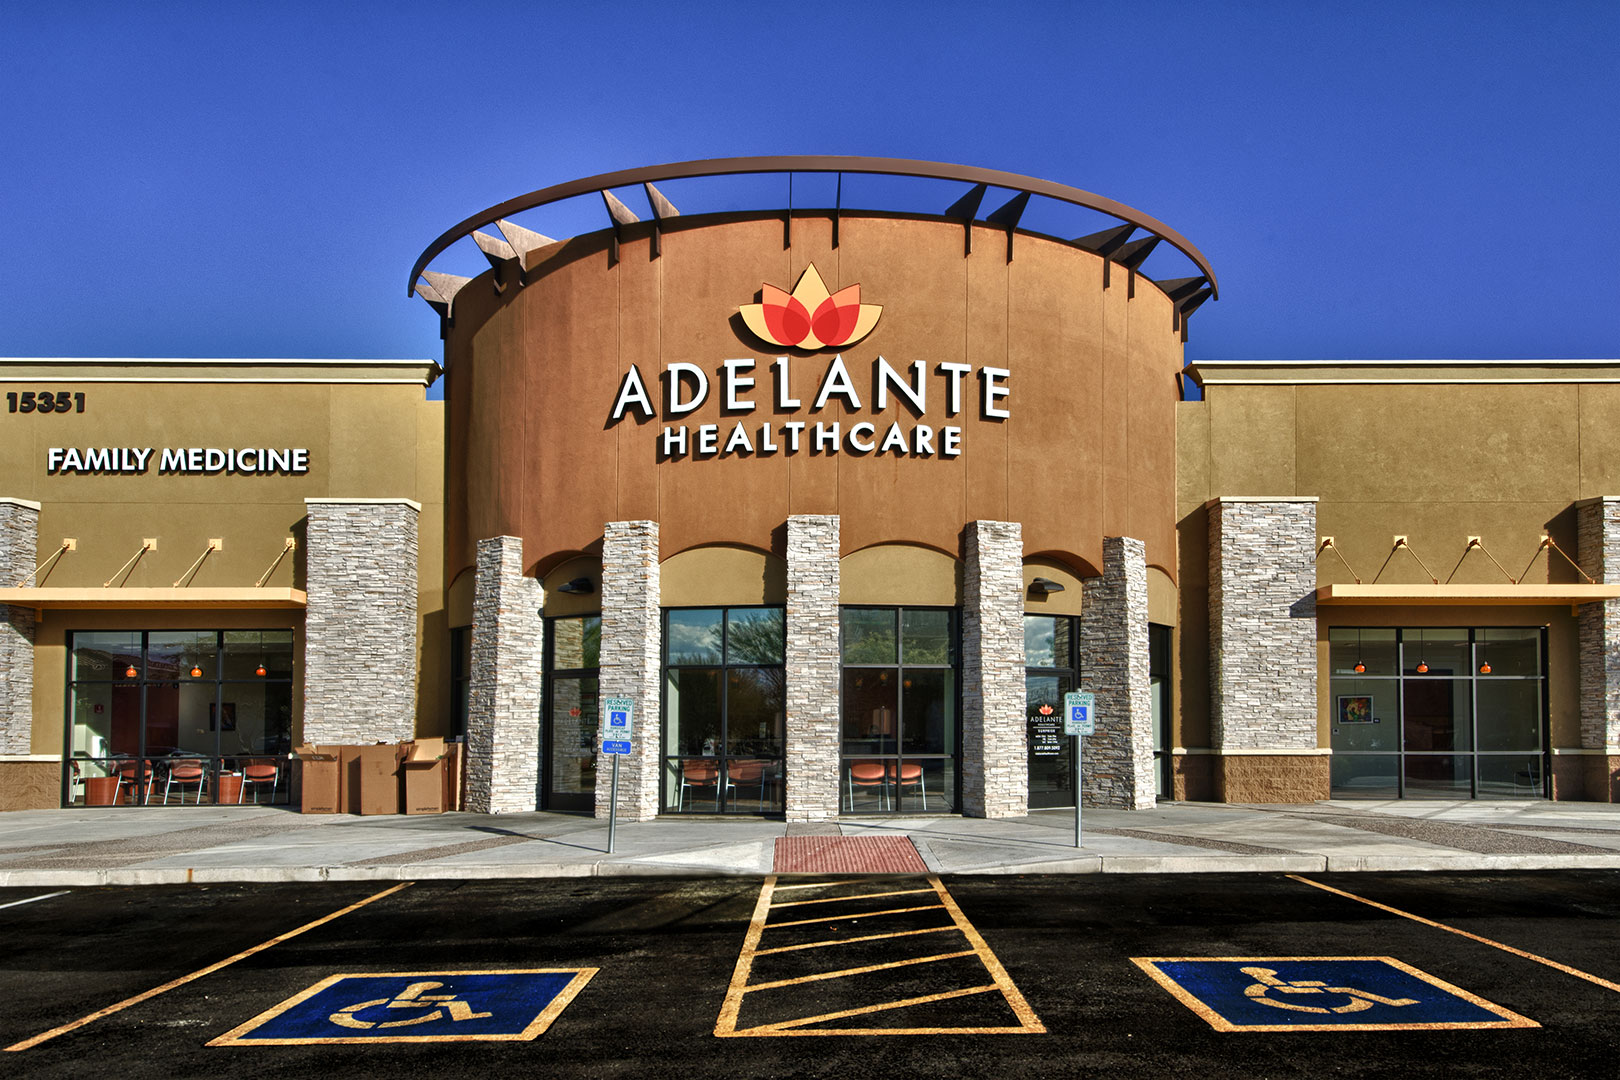 cawley-architects-healthcare-adelante-healthcare-surprise-ext-088-f